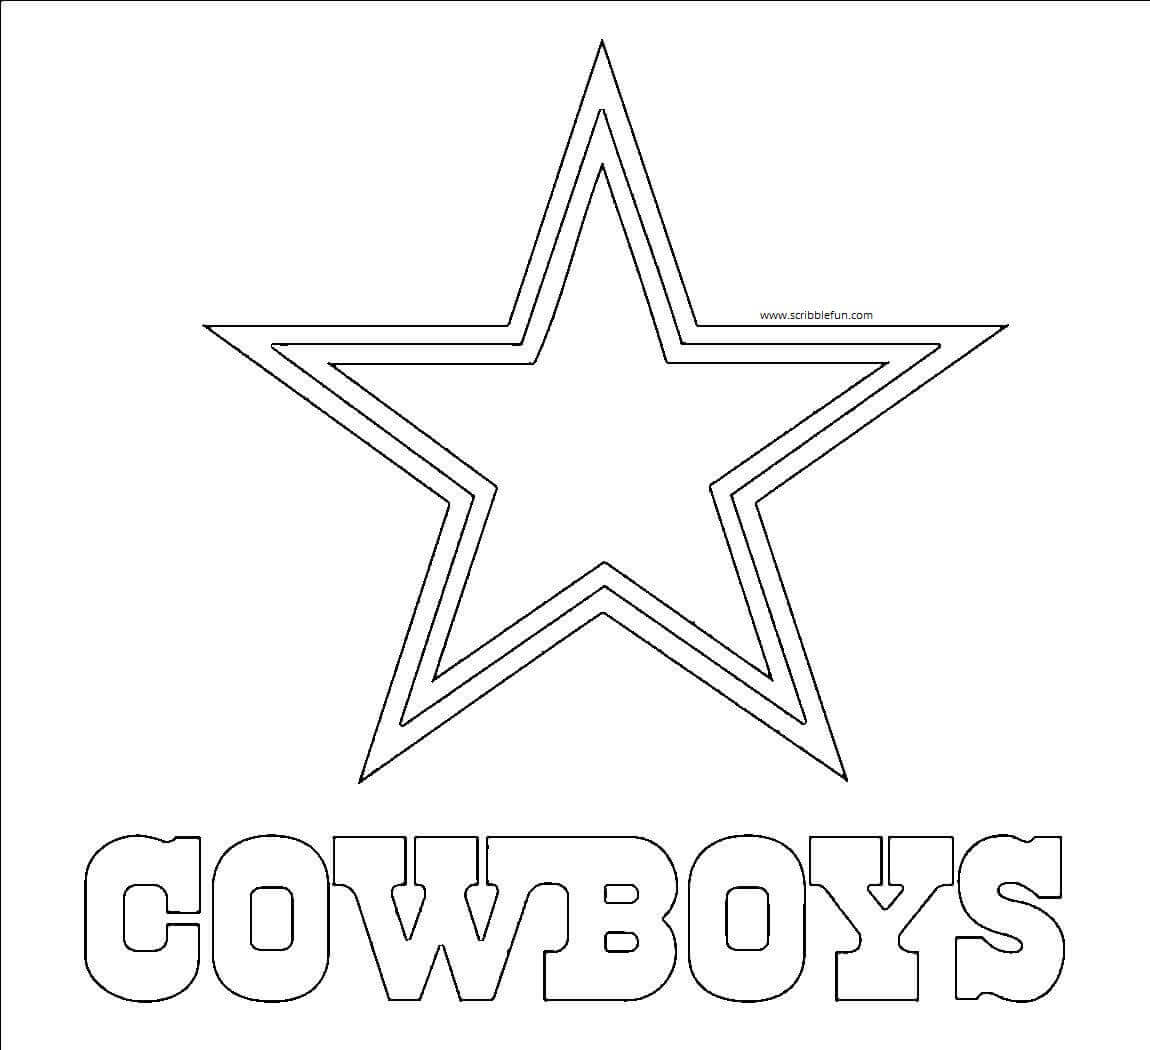 Dallas Cowboys NFL Colouring Page